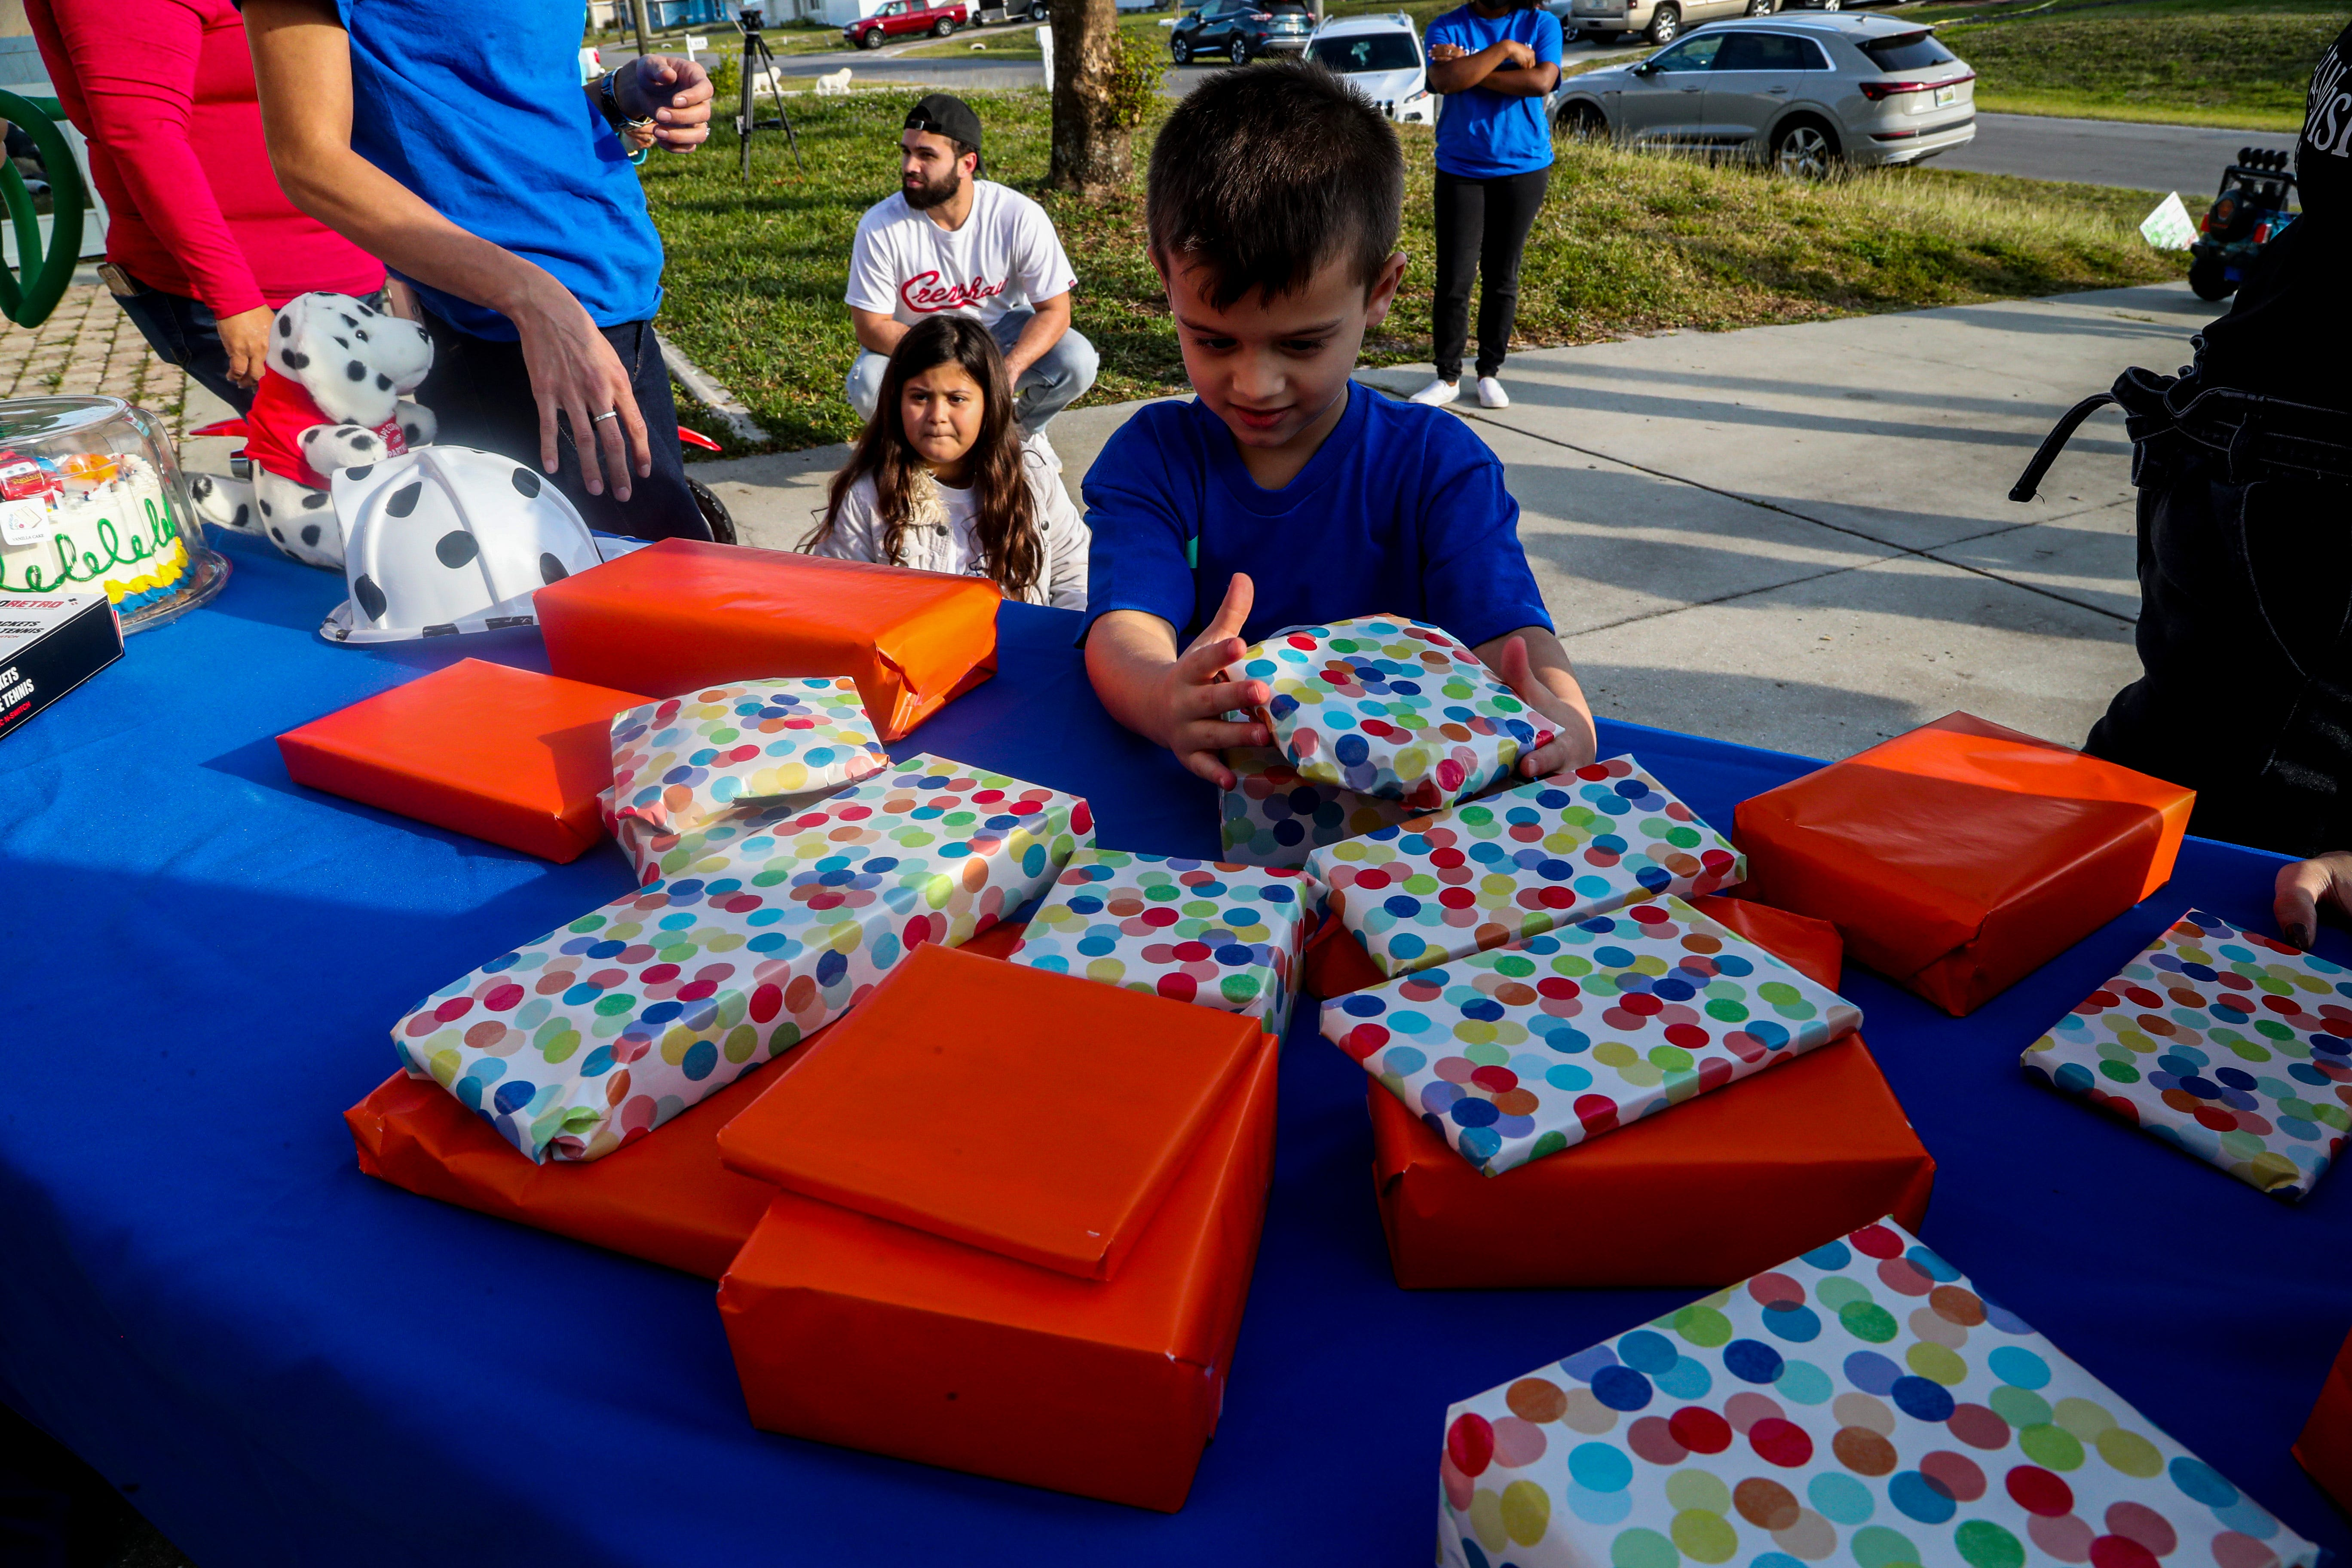 Cancer-stricken Cape Coral boy's wish granted at front door — toys, fire truck and police cars 1